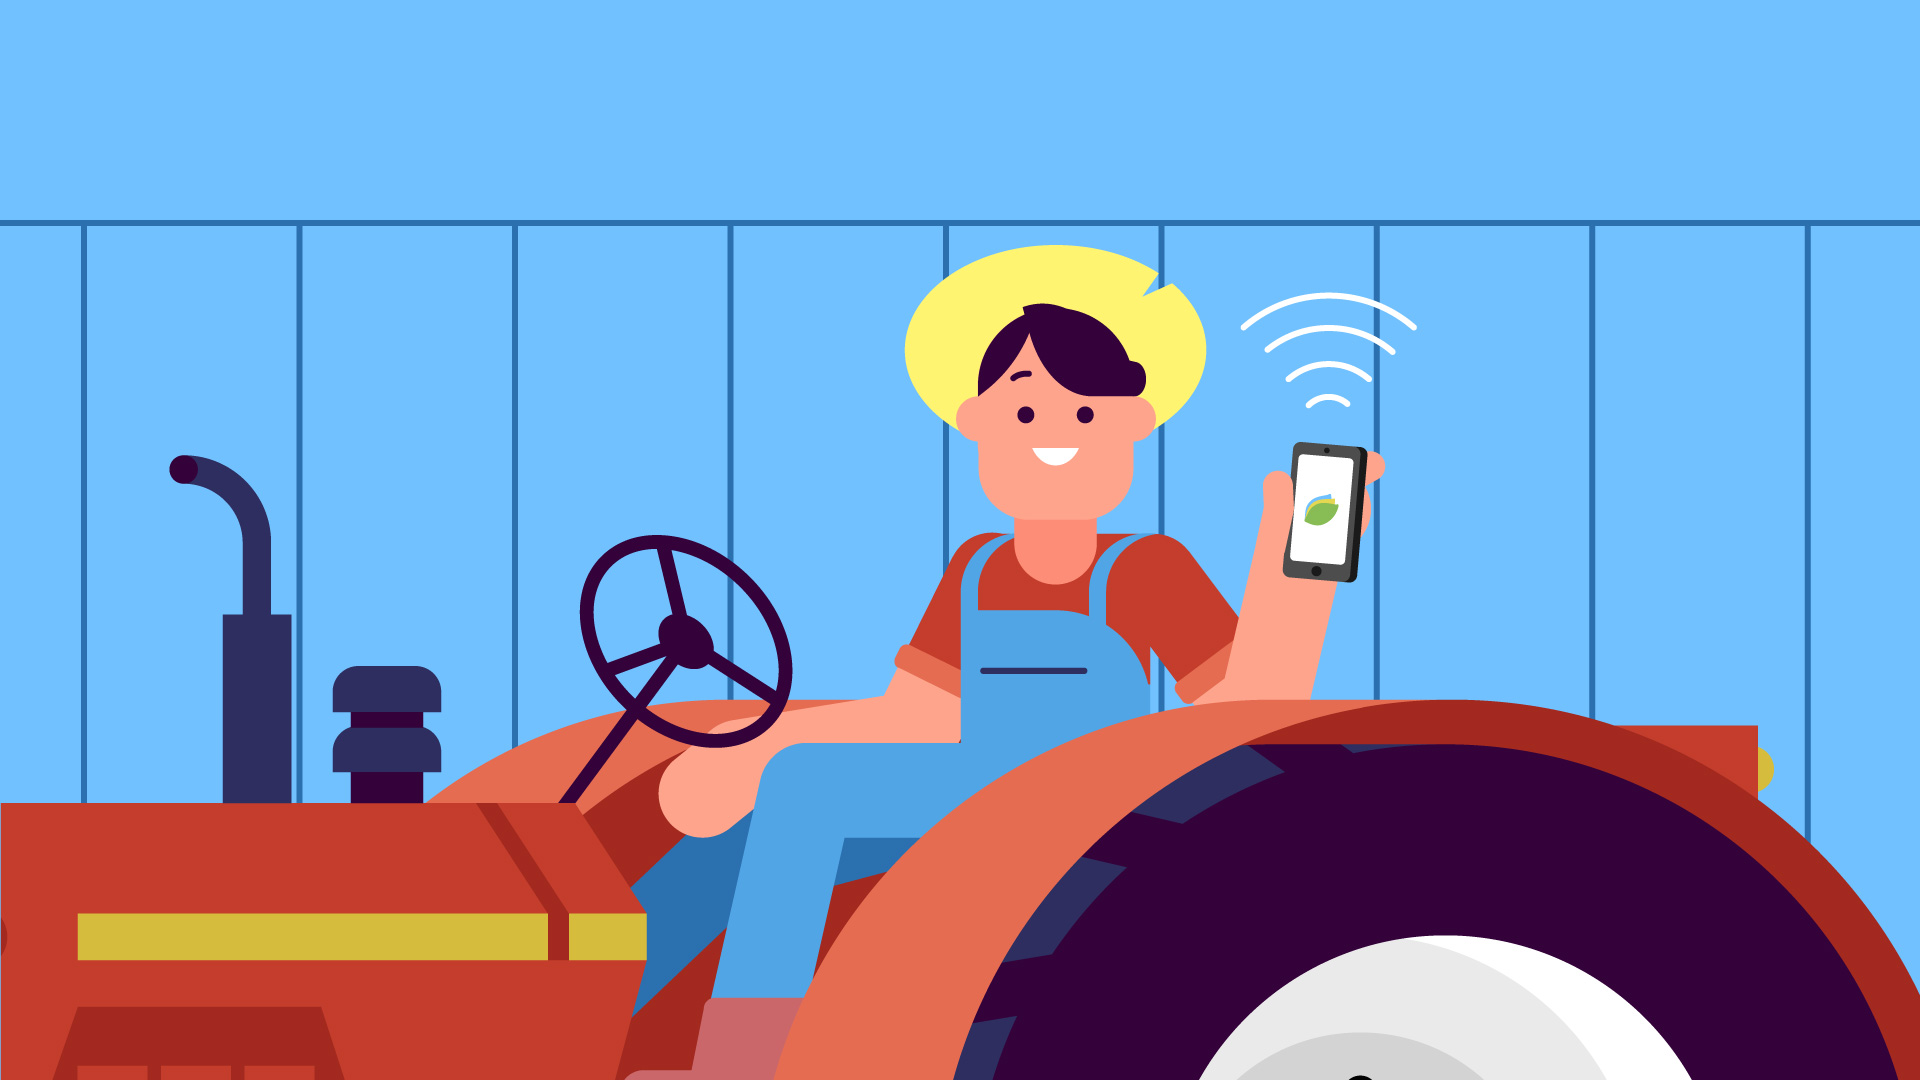 Illustration of a farmer sitting on a tractor and showing a phone